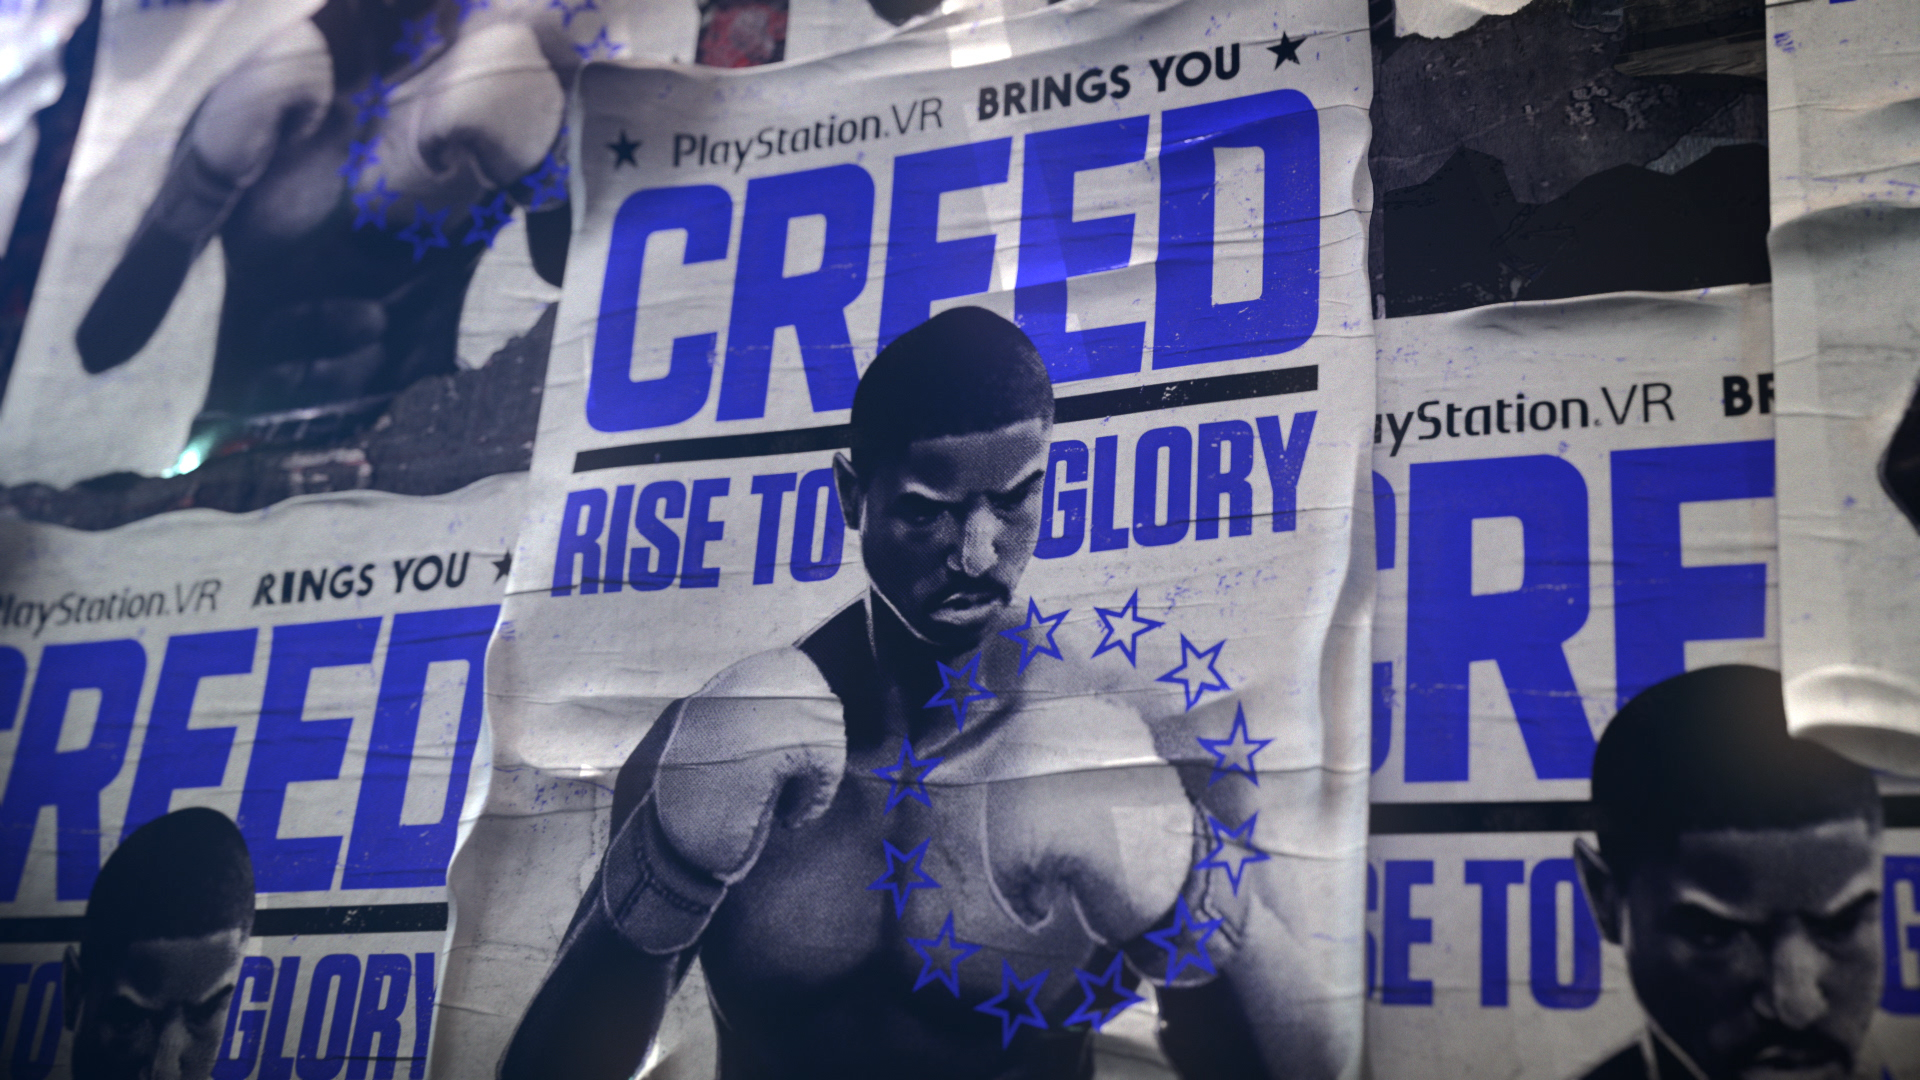 NFA_30_Creed_Cinema_Agency_30_Unslated_Pro_Res (86509).png